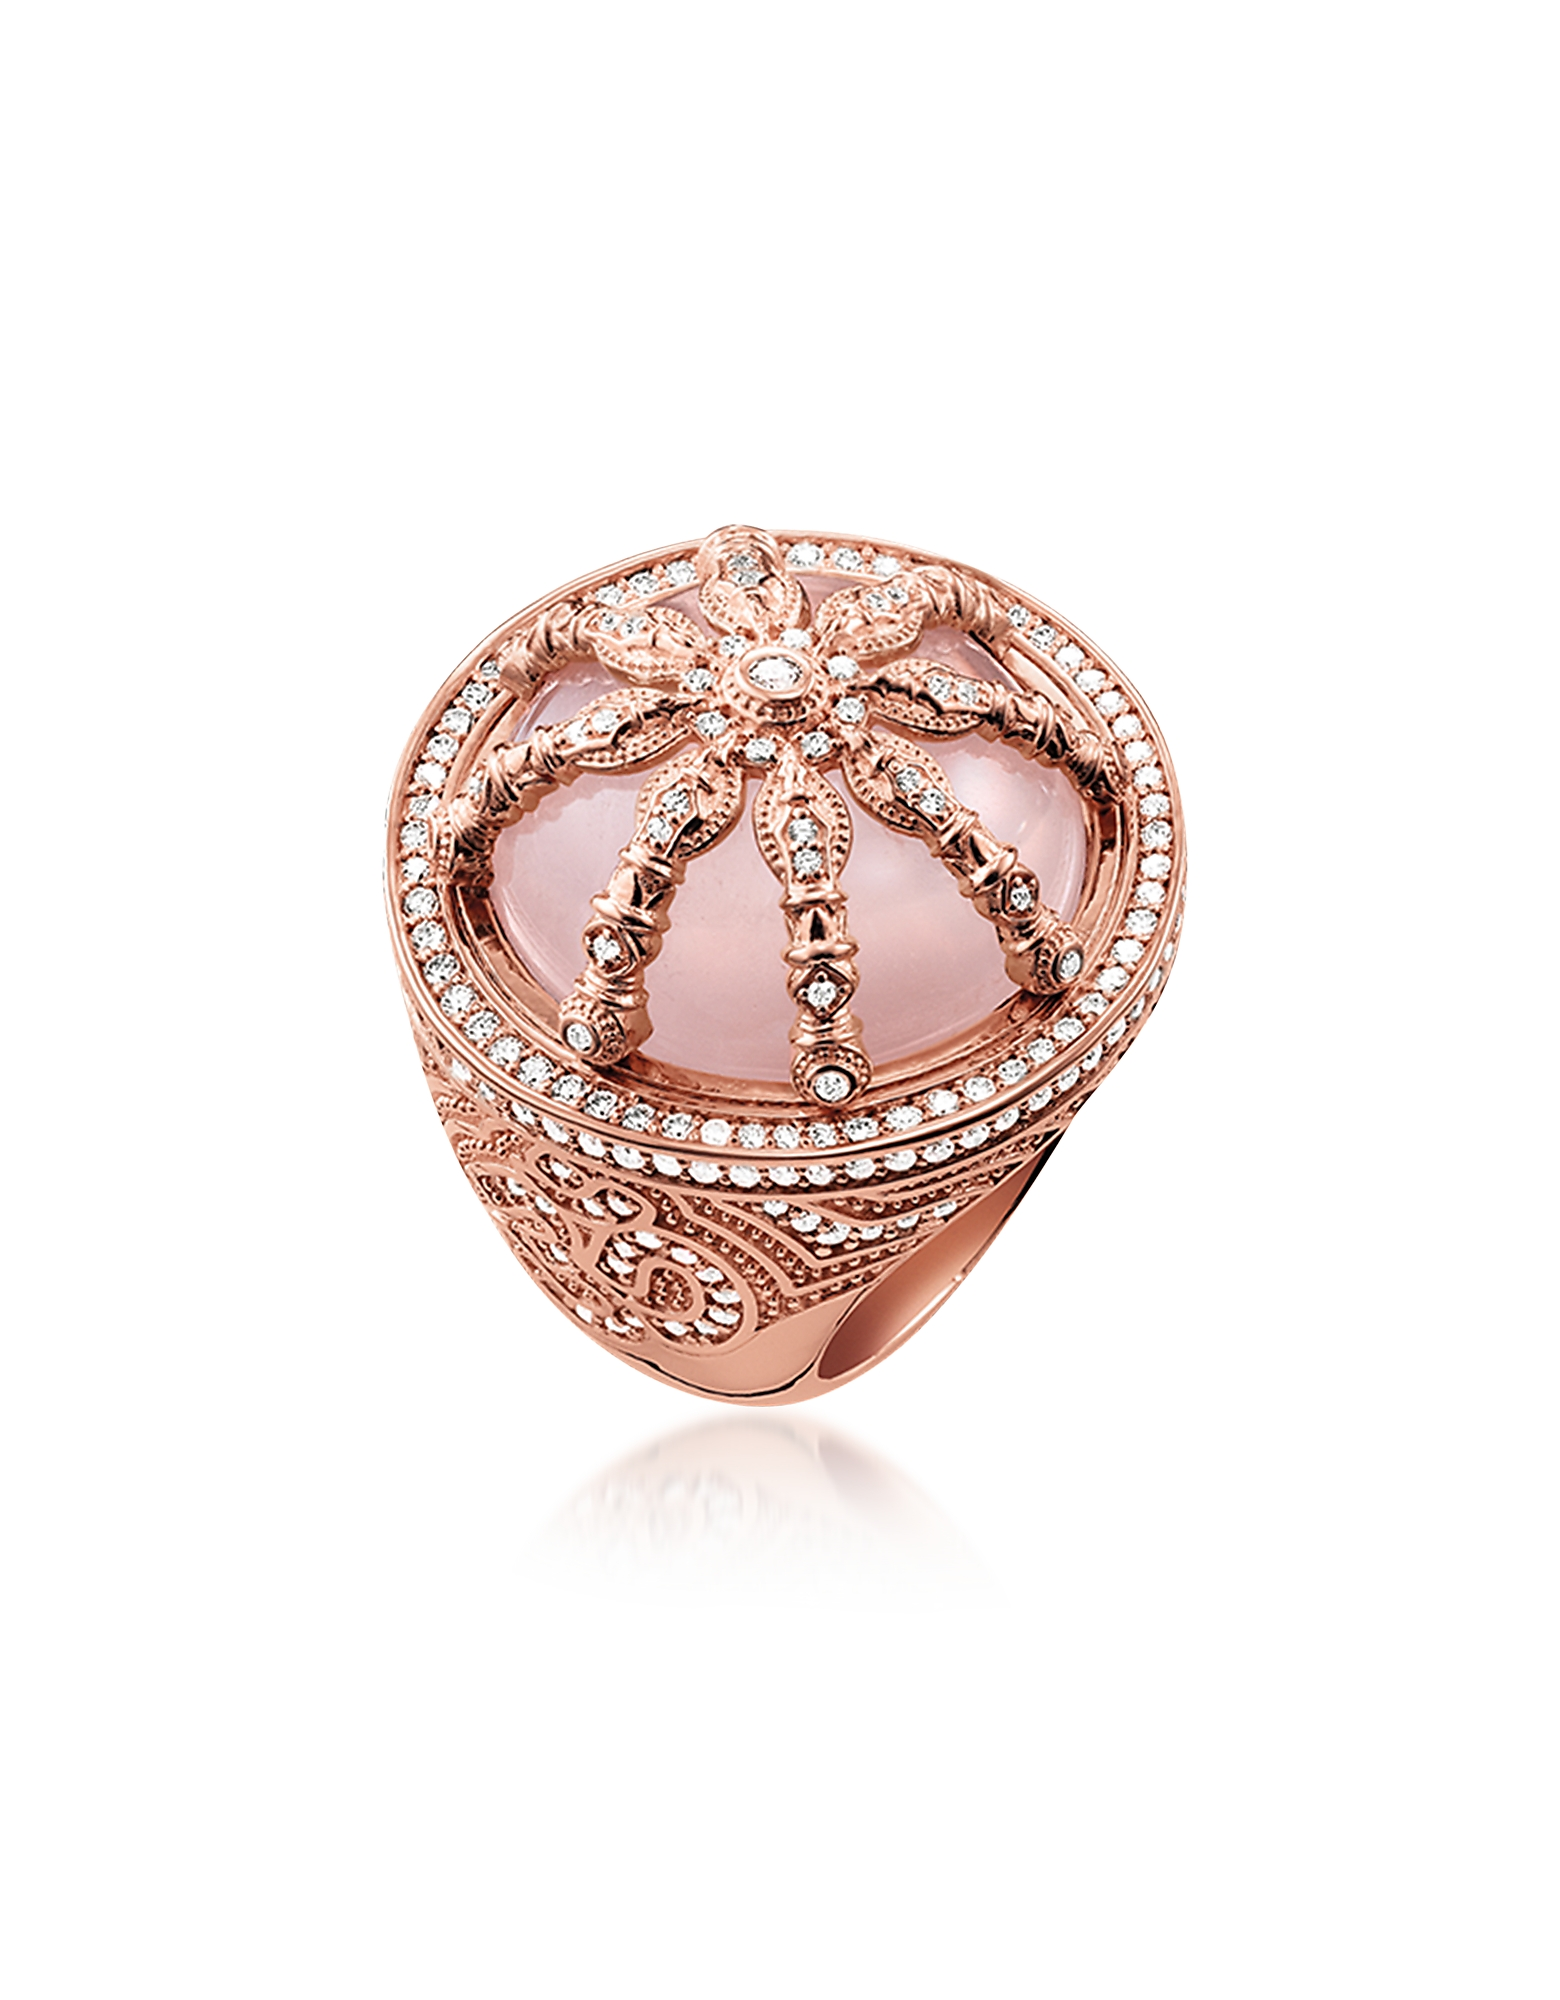 Thomas Sabo Rings, 18k Rose Gold Plated Sterling Silver Ring w/White Zirconia and Rose Quartz